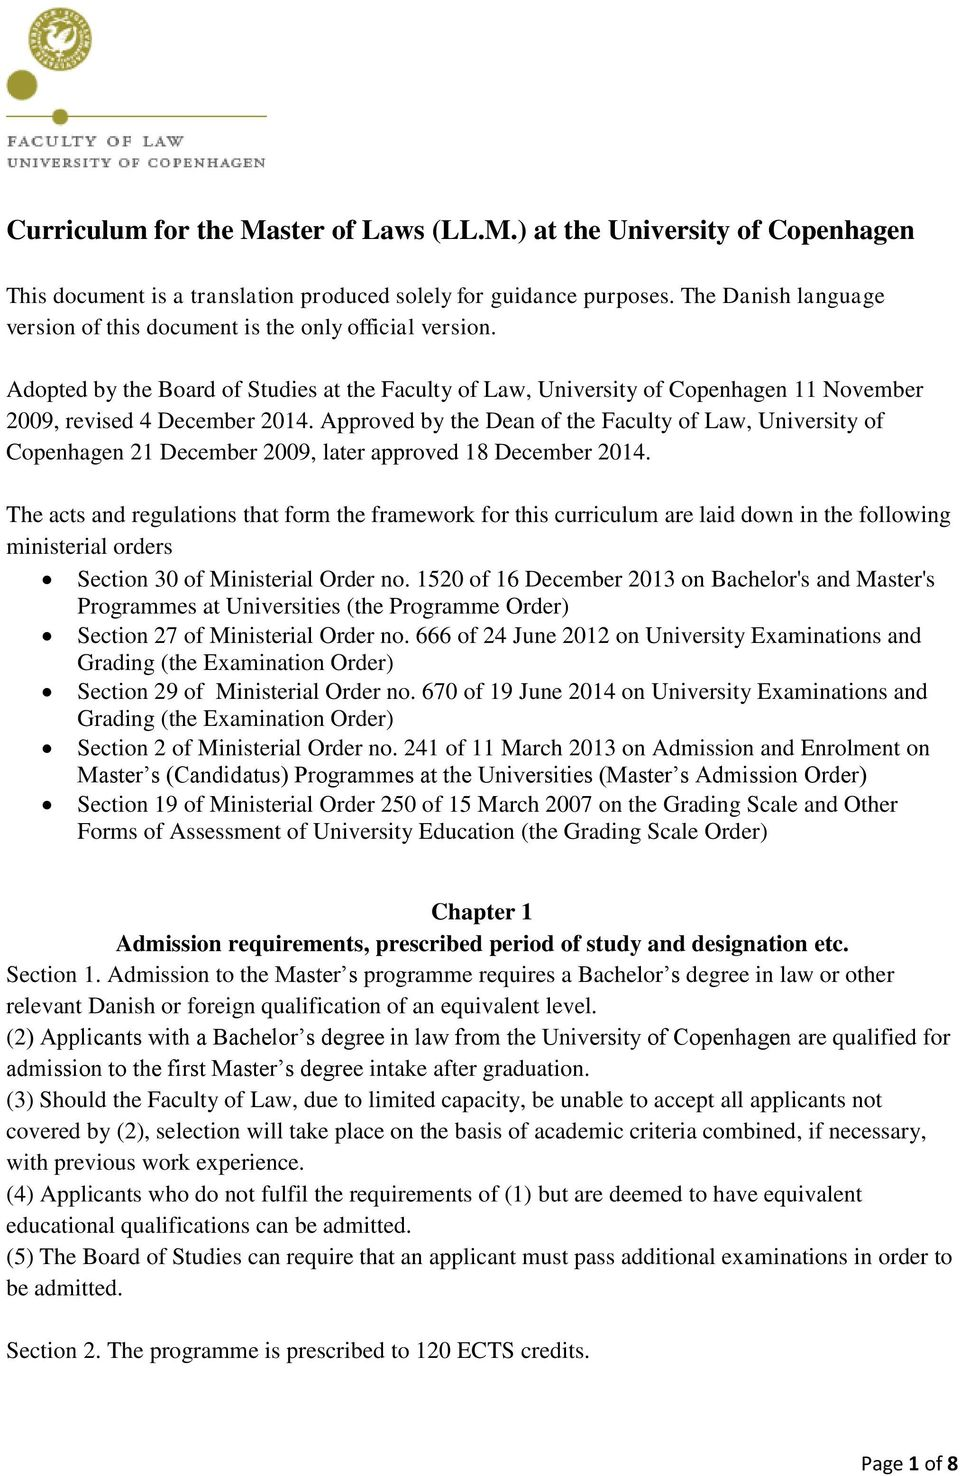 Approved by the Dean of the Faculty of Law, University of Copenhagen 21 December 2009, later approved 18 December 2014.